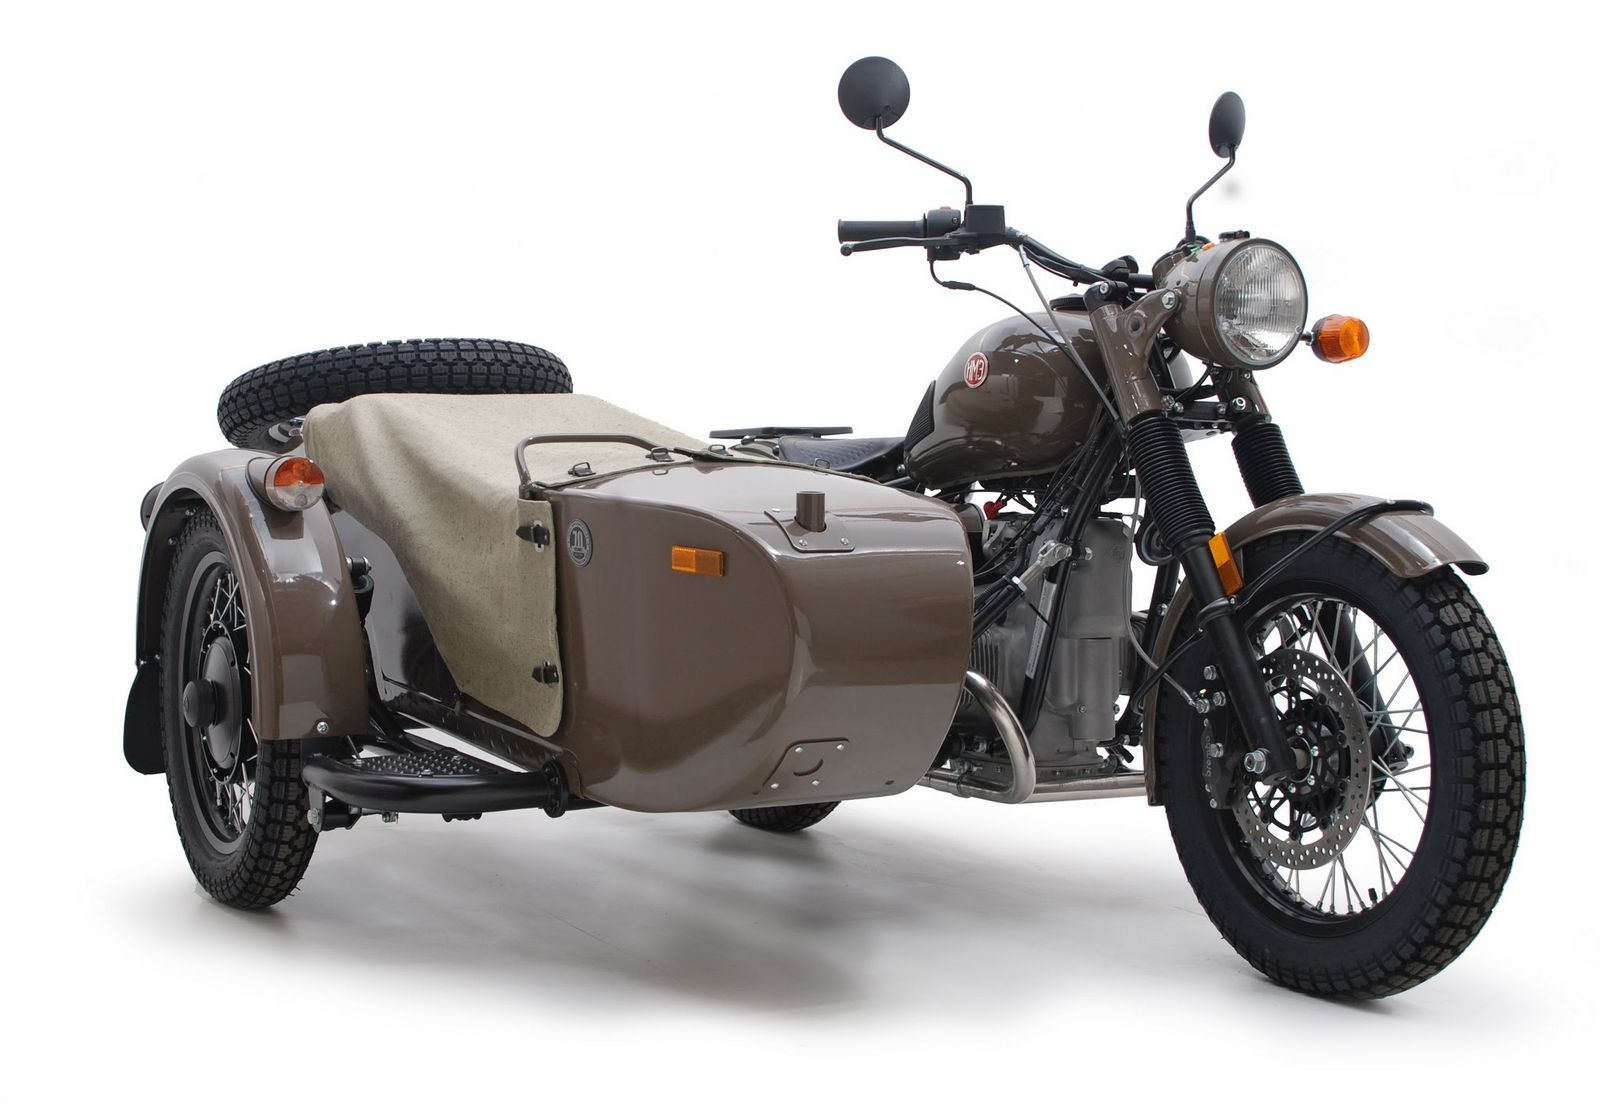 ural m70 anniversary edition sidecar motorcycle 39 s with sidecars. Black Bedroom Furniture Sets. Home Design Ideas